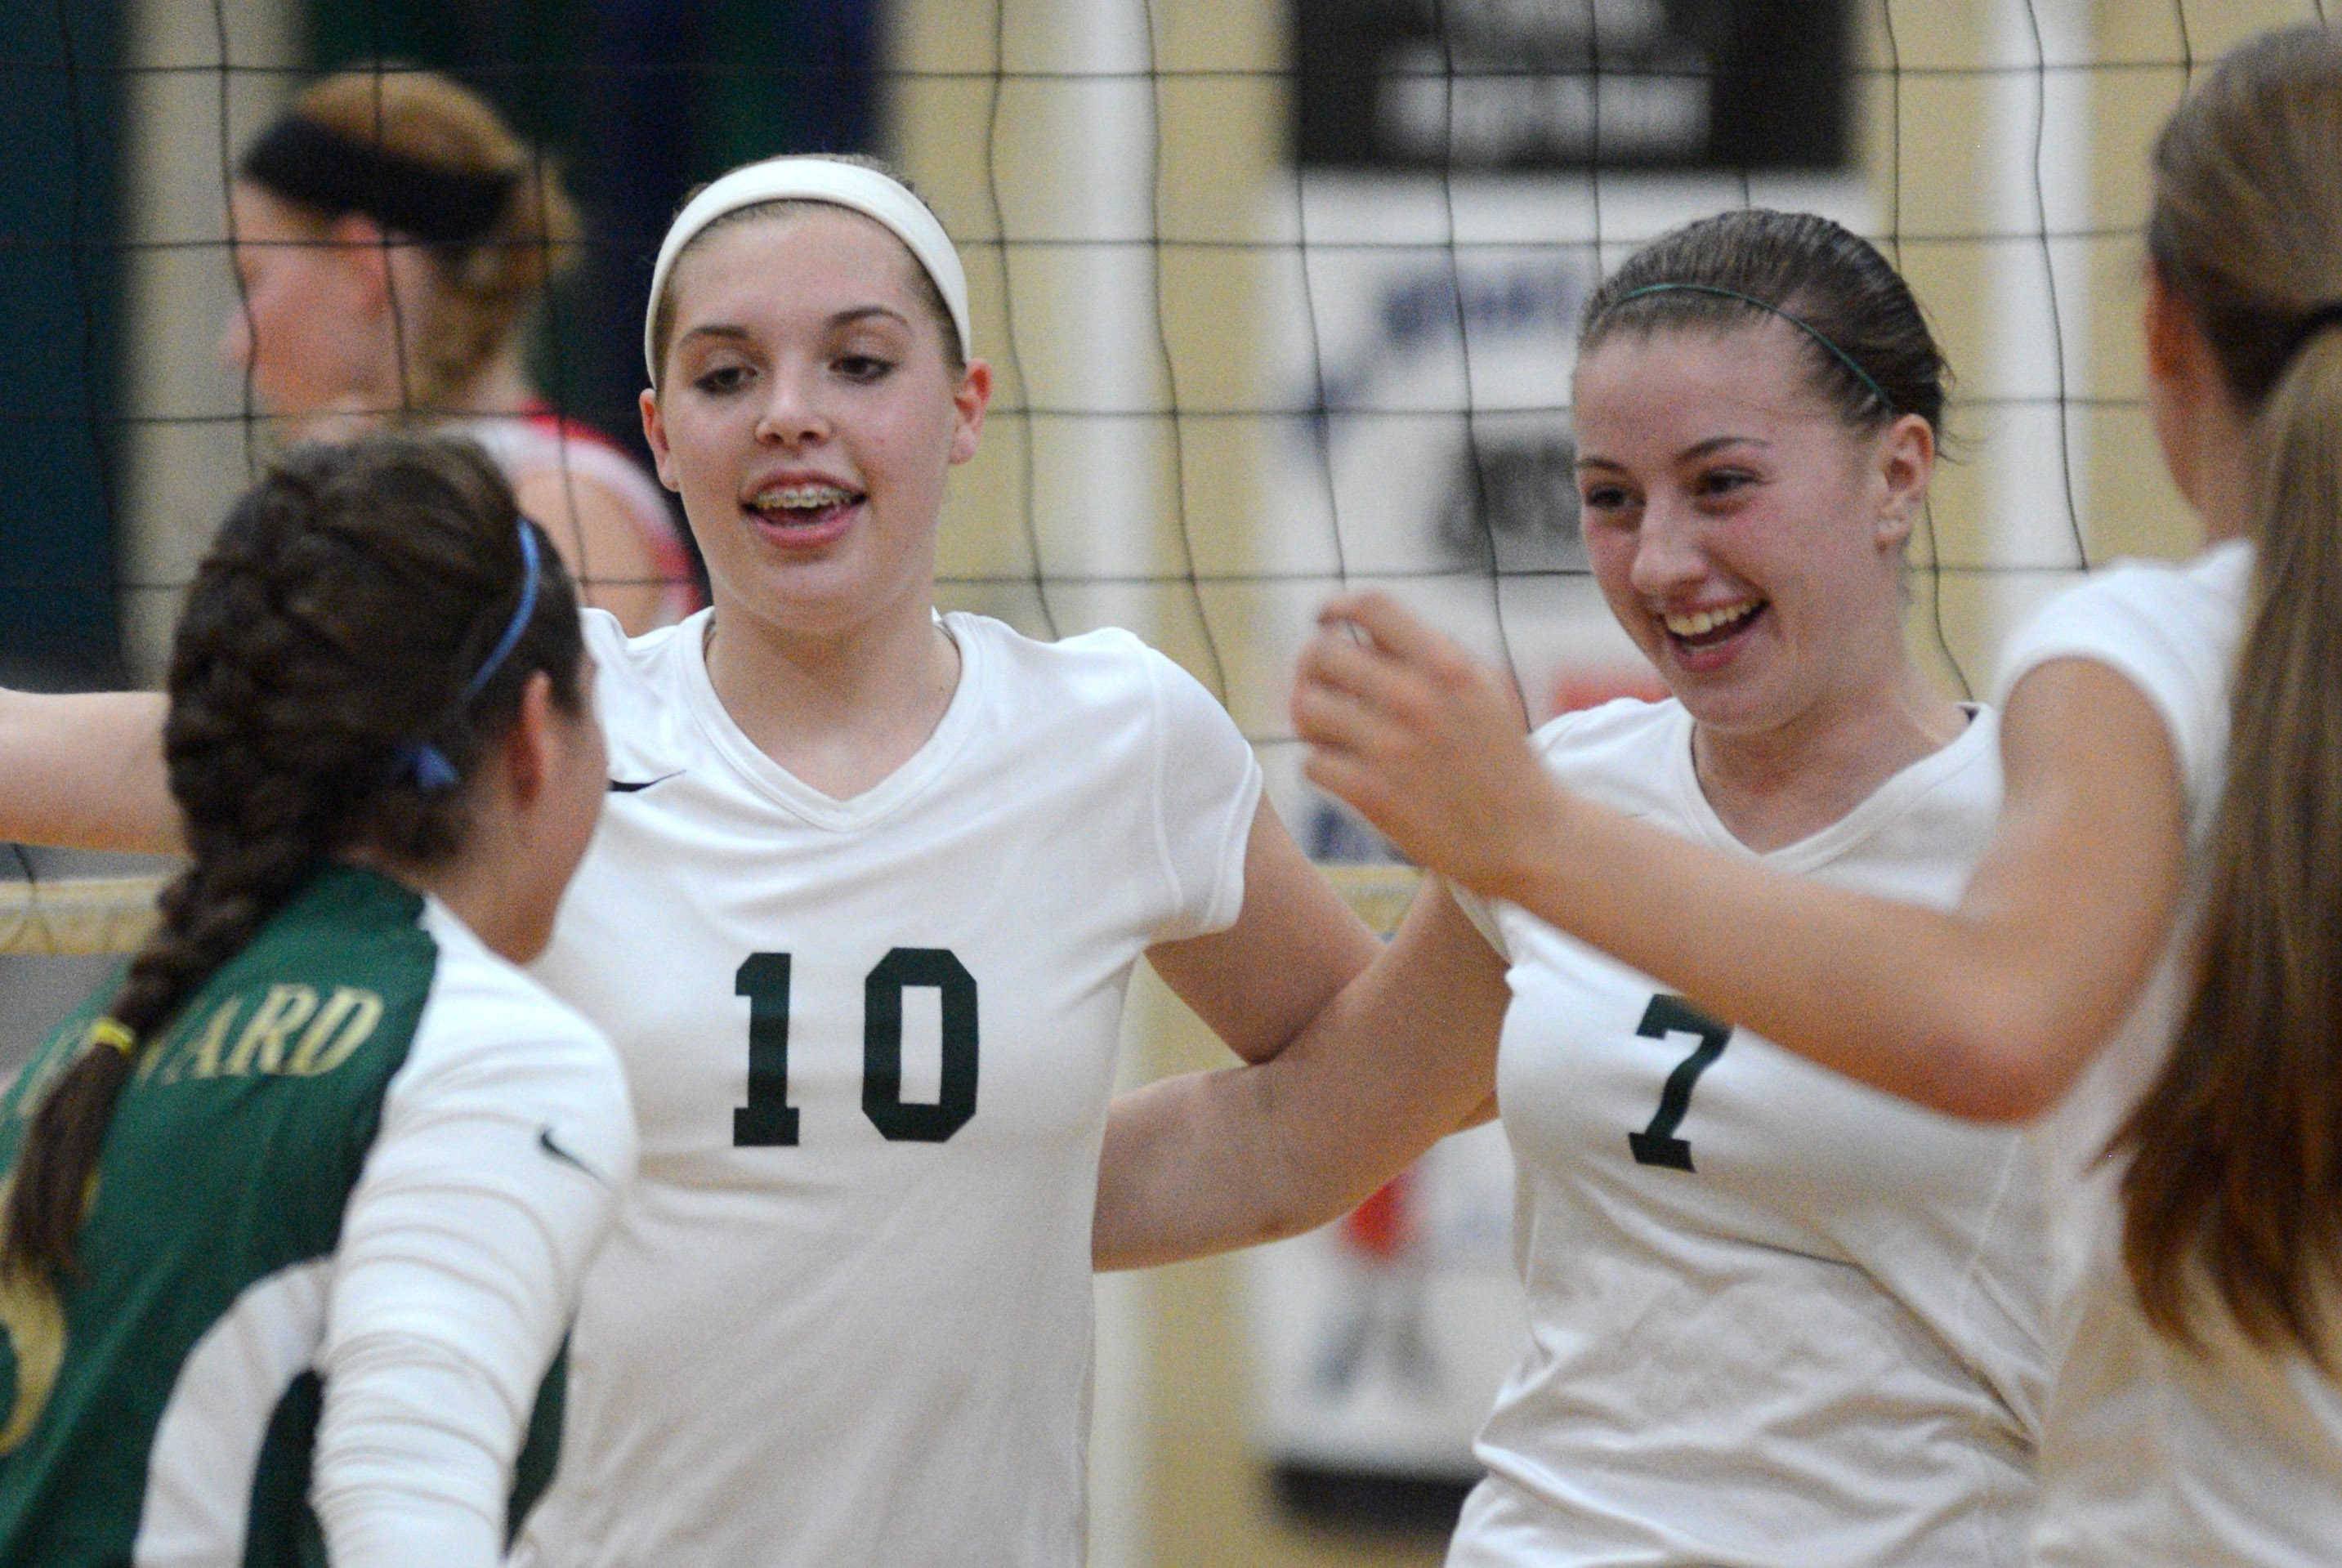 St. Edward Green Wave players come together during their game with South Elgin during volleyball at St. Edward on Wednesday evening. At left is Samantha Boydston and at right is Gabriella Tripicchio.